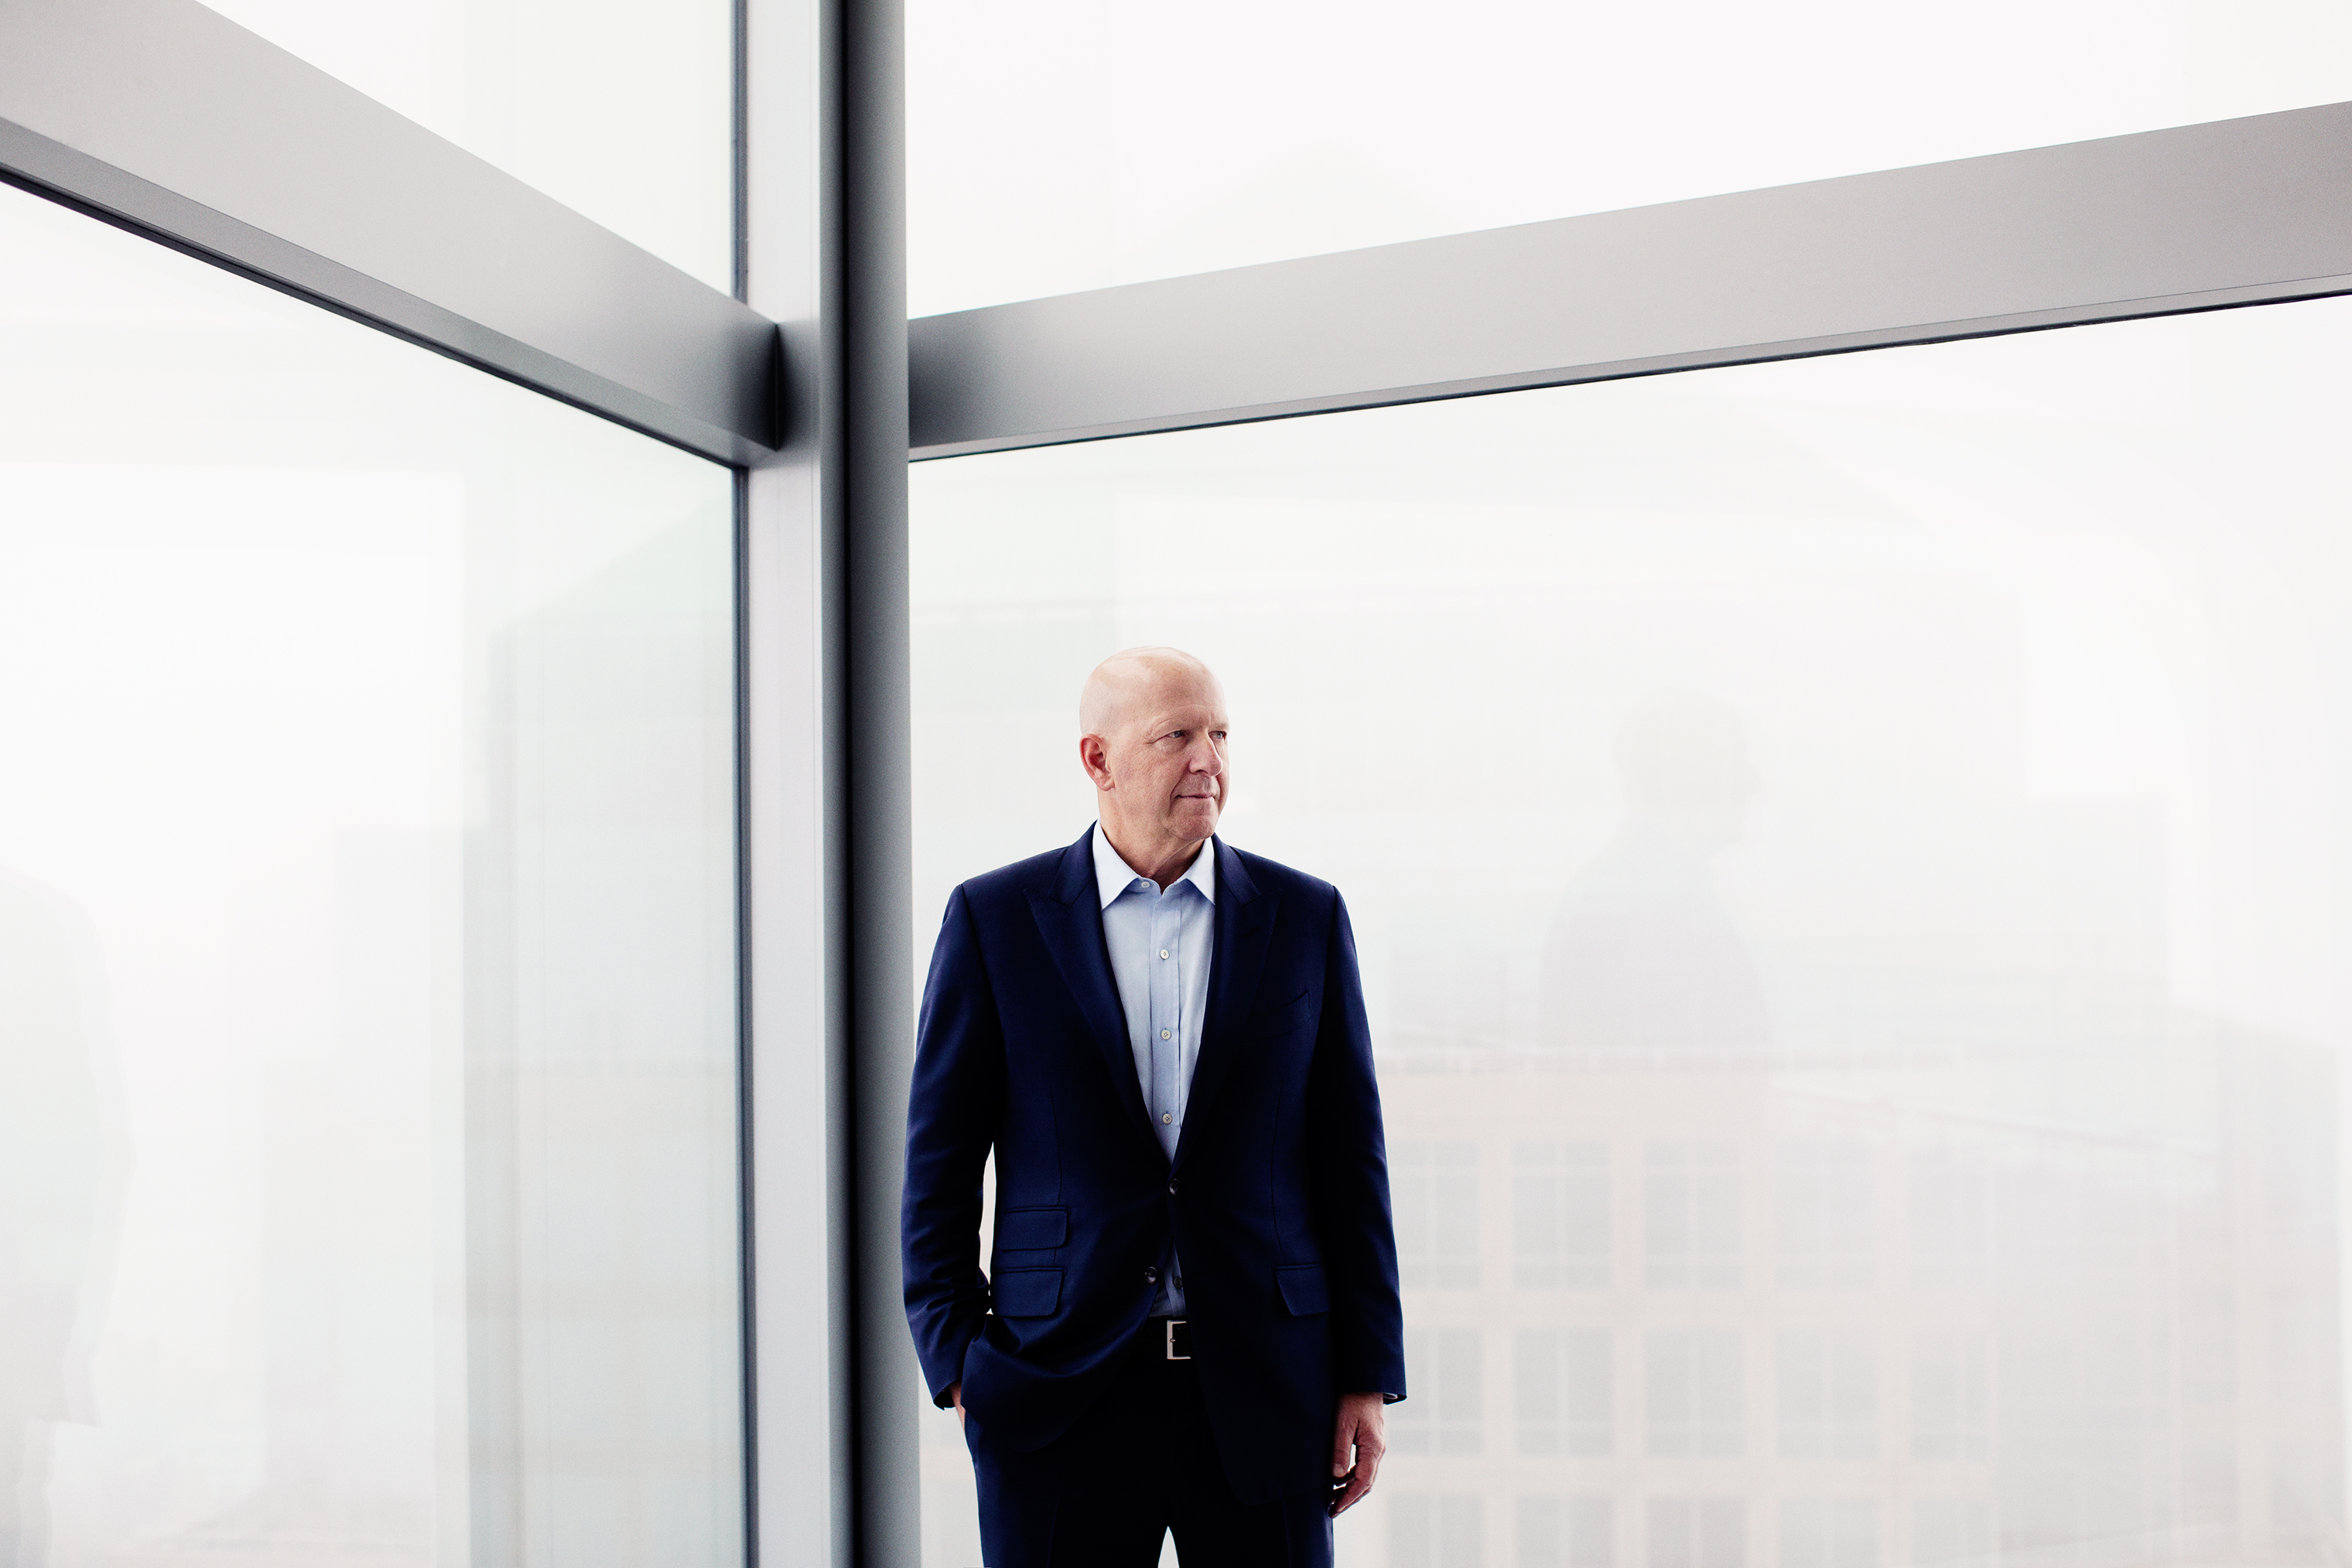 Goldman Sachs CEO David Solomon Is Shaking Things Up at Wall